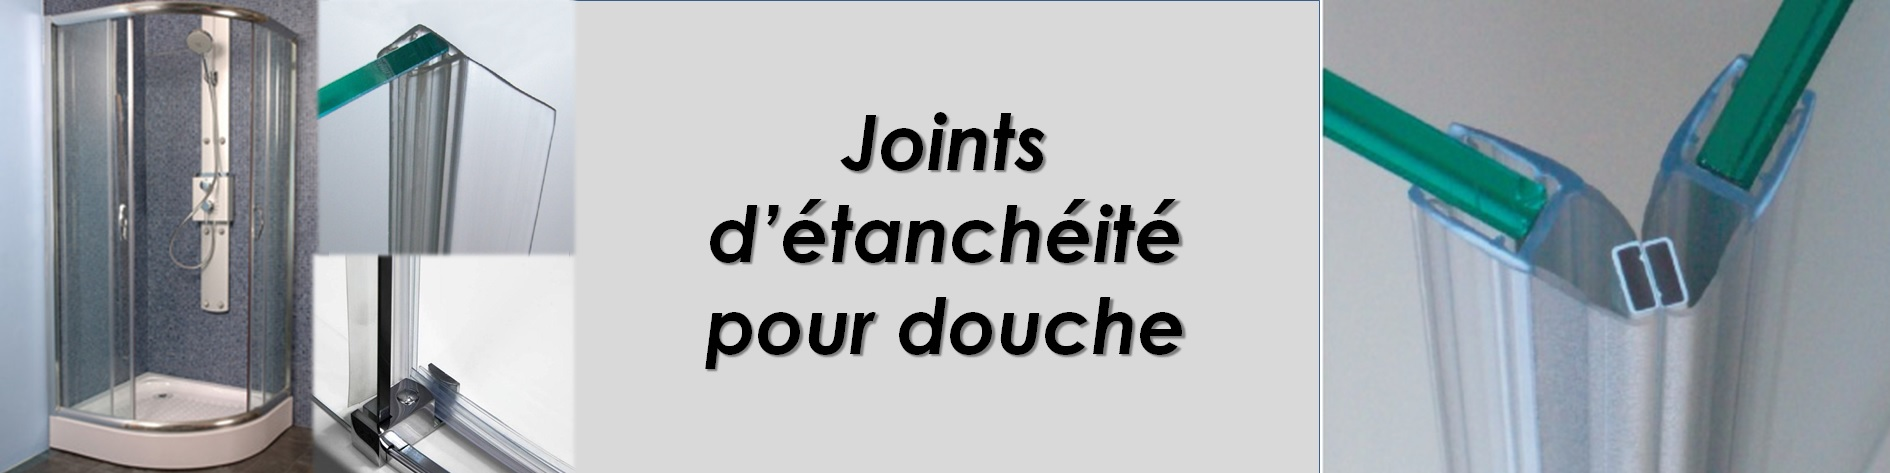 Joints tanch it joint de douche joint de porte de - Joint pour porte de douche ...